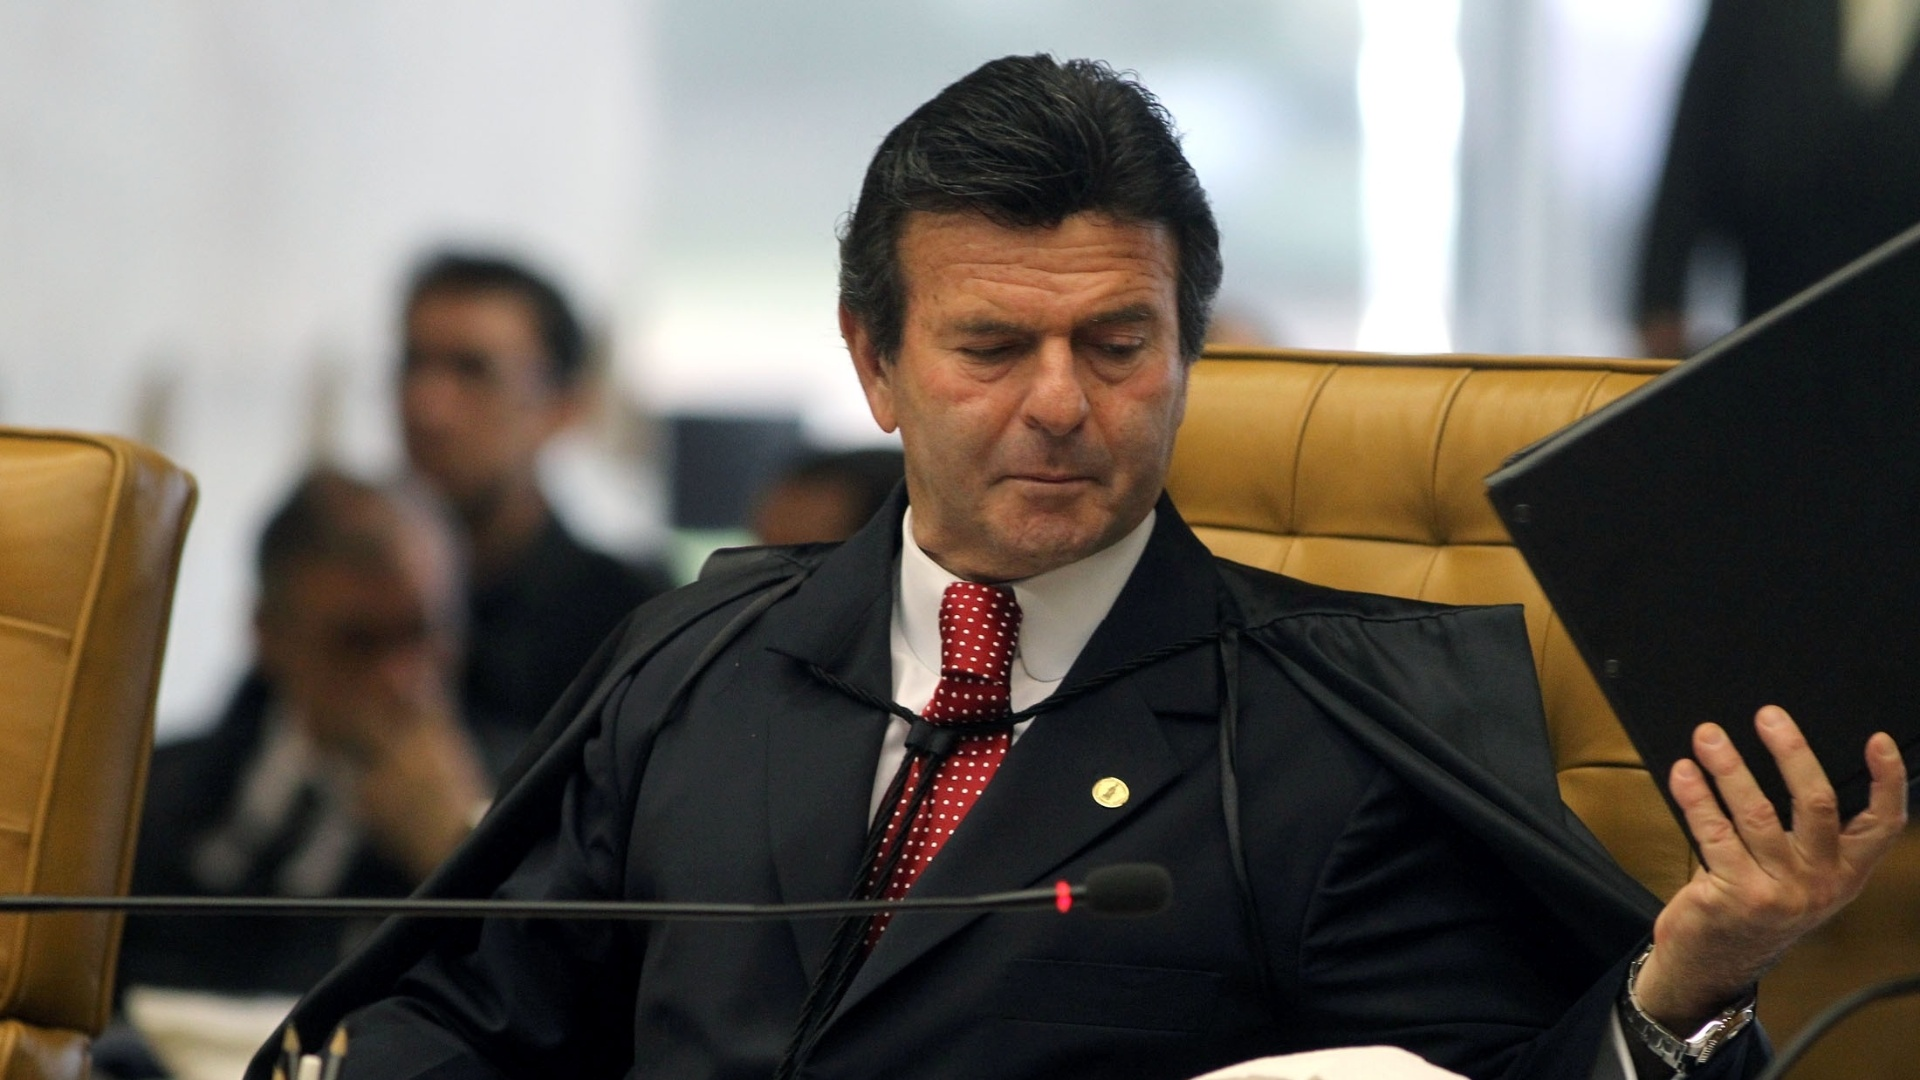 22.out.2012 - O ministro Luiz Fux segue o voto do relator do processo do mensalo, Joaquim Barbosa, e condena Dirceu e cpula do PT por formao de quadrilha